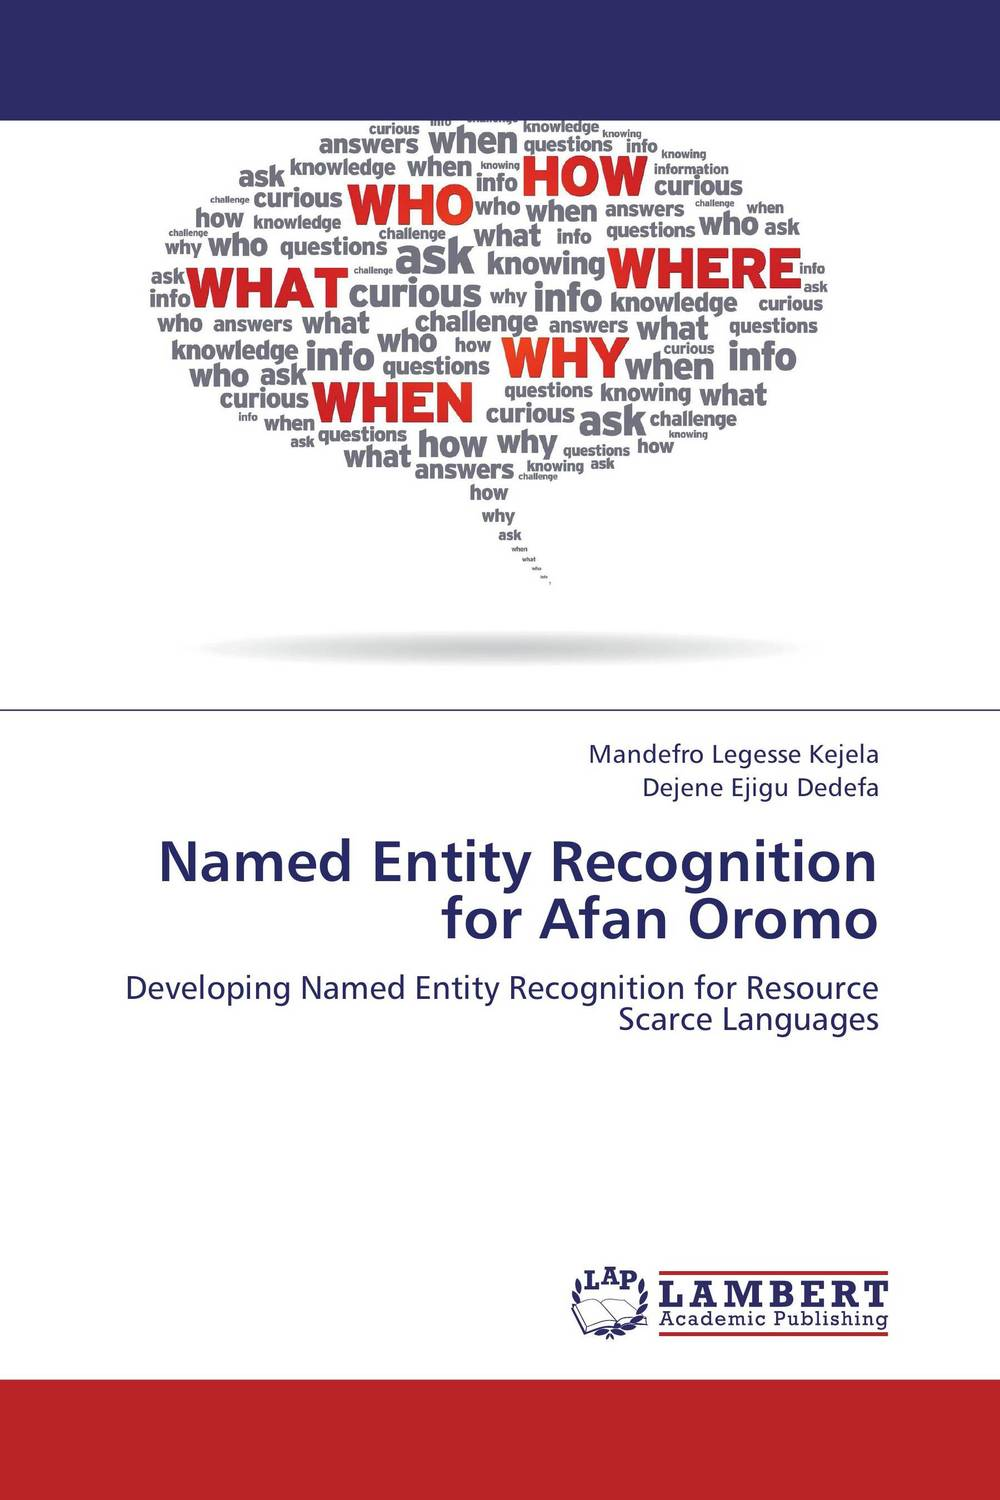 Named Entity Recognition for Afan Oromo automatic construction of labeled clusters of named entities for ir